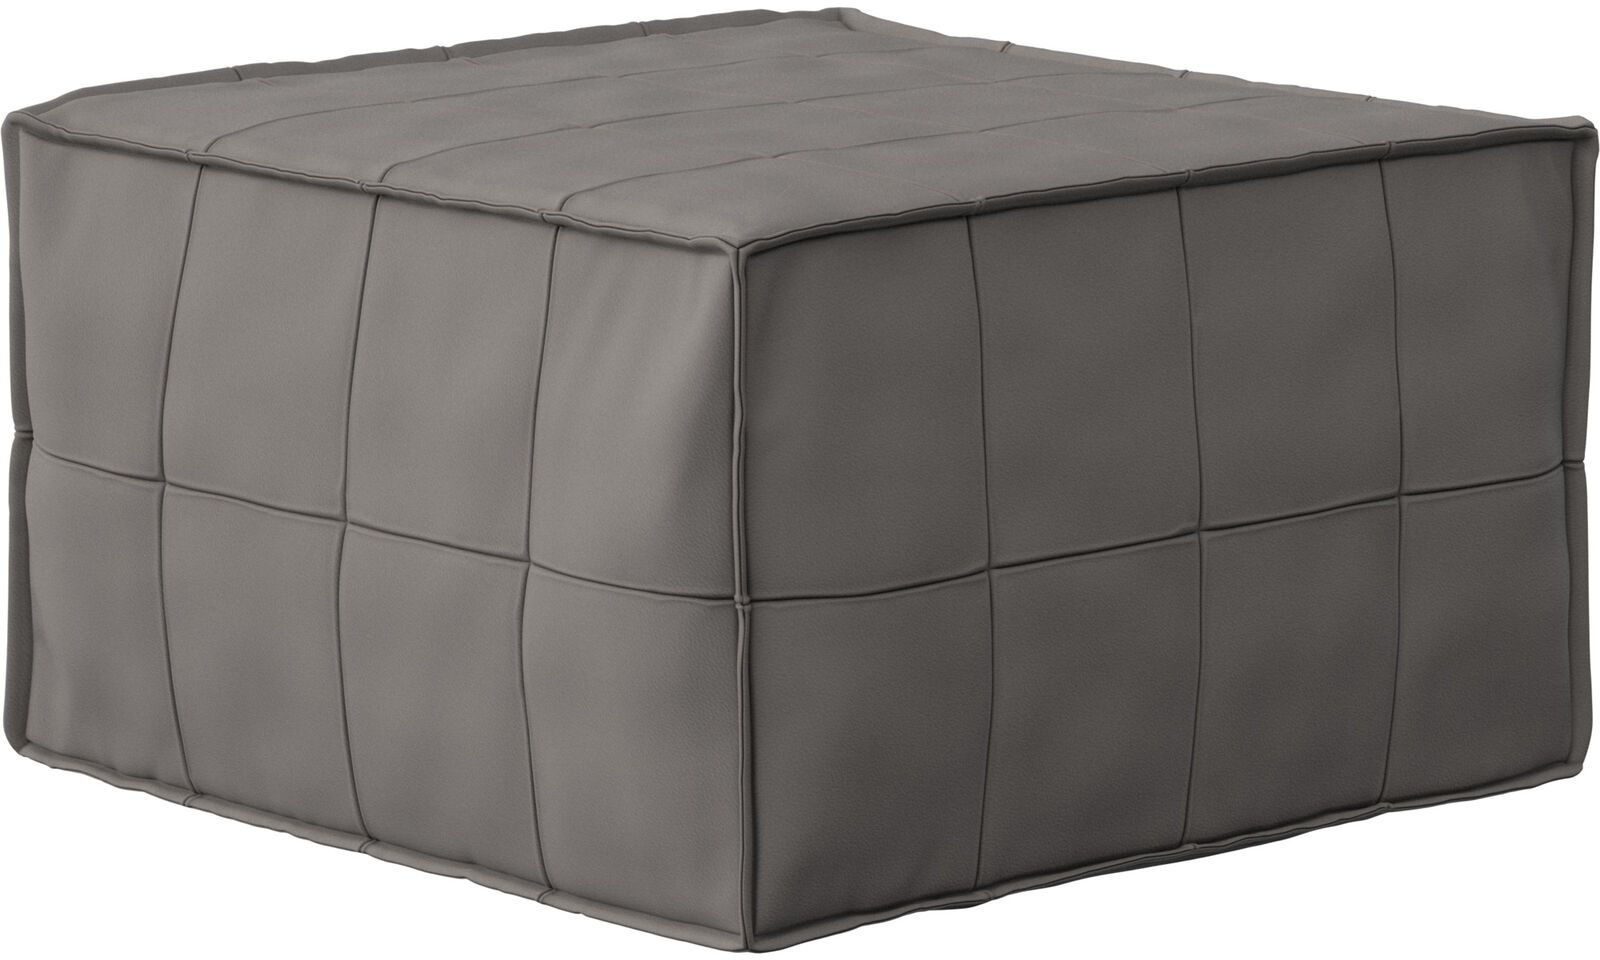 Xtra Tufted Footstool With Sleeping Function In 2020 Modern